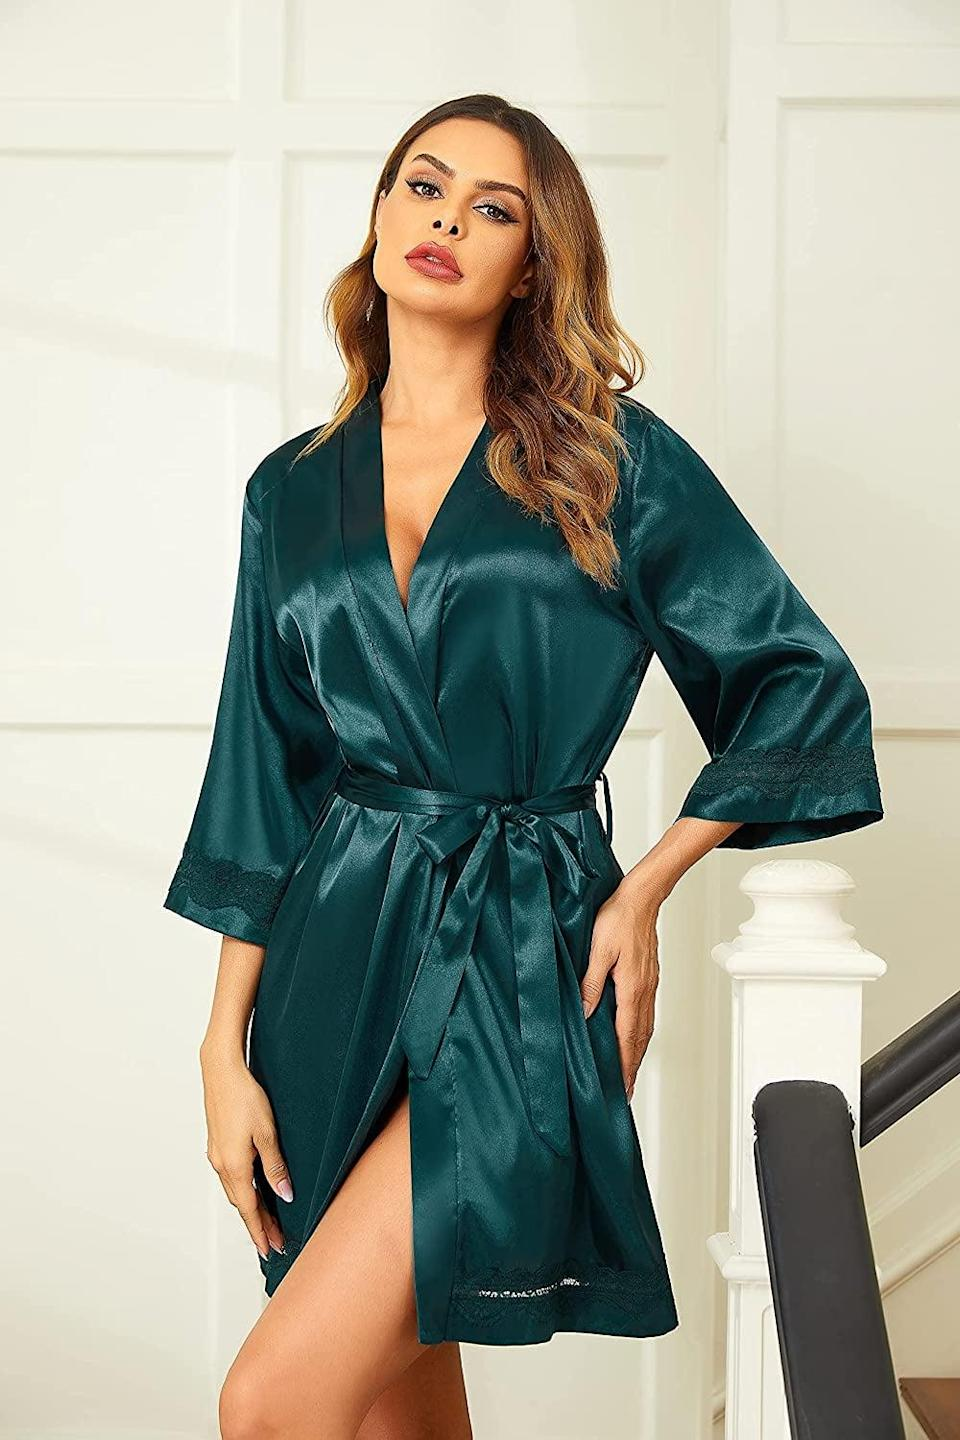 <p>If they're all about that fabulous, luxurious vibe, they'll obsess over this <span>Ekouaer Women's Lace-Trim Kimono Style Short Satin Robe Sleepwear</span> ($24). It will make them feel like royalty. Plus, it comes in a ton of different colors and patterns so you can choose their favorite color.</p>